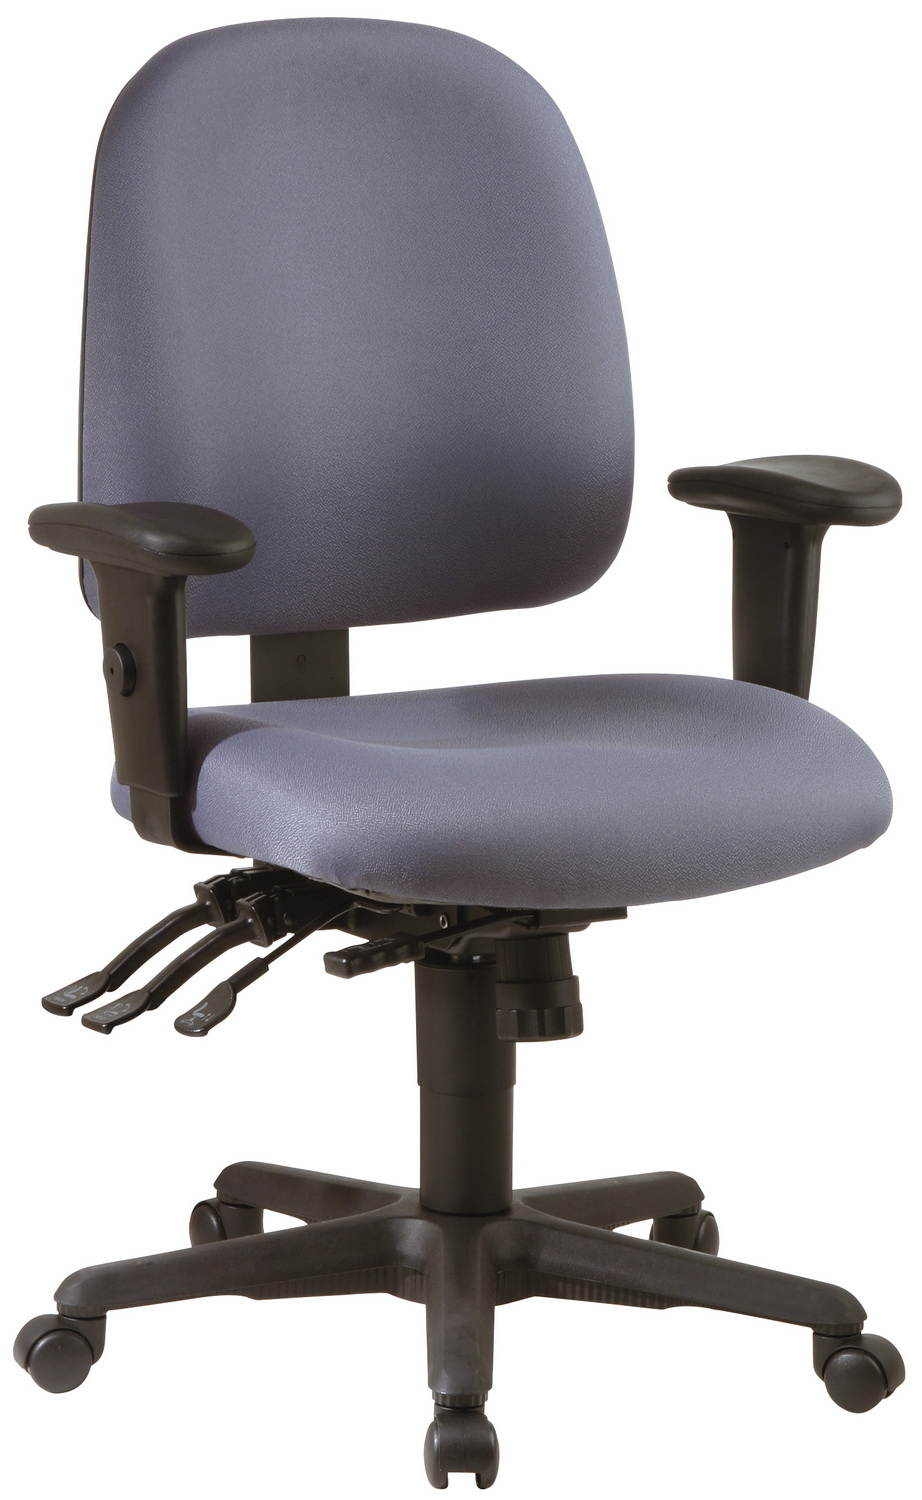 Outstanding Office Chairs Unlimited Free Shipping Usd Ground Free Pdpeps Interior Chair Design Pdpepsorg